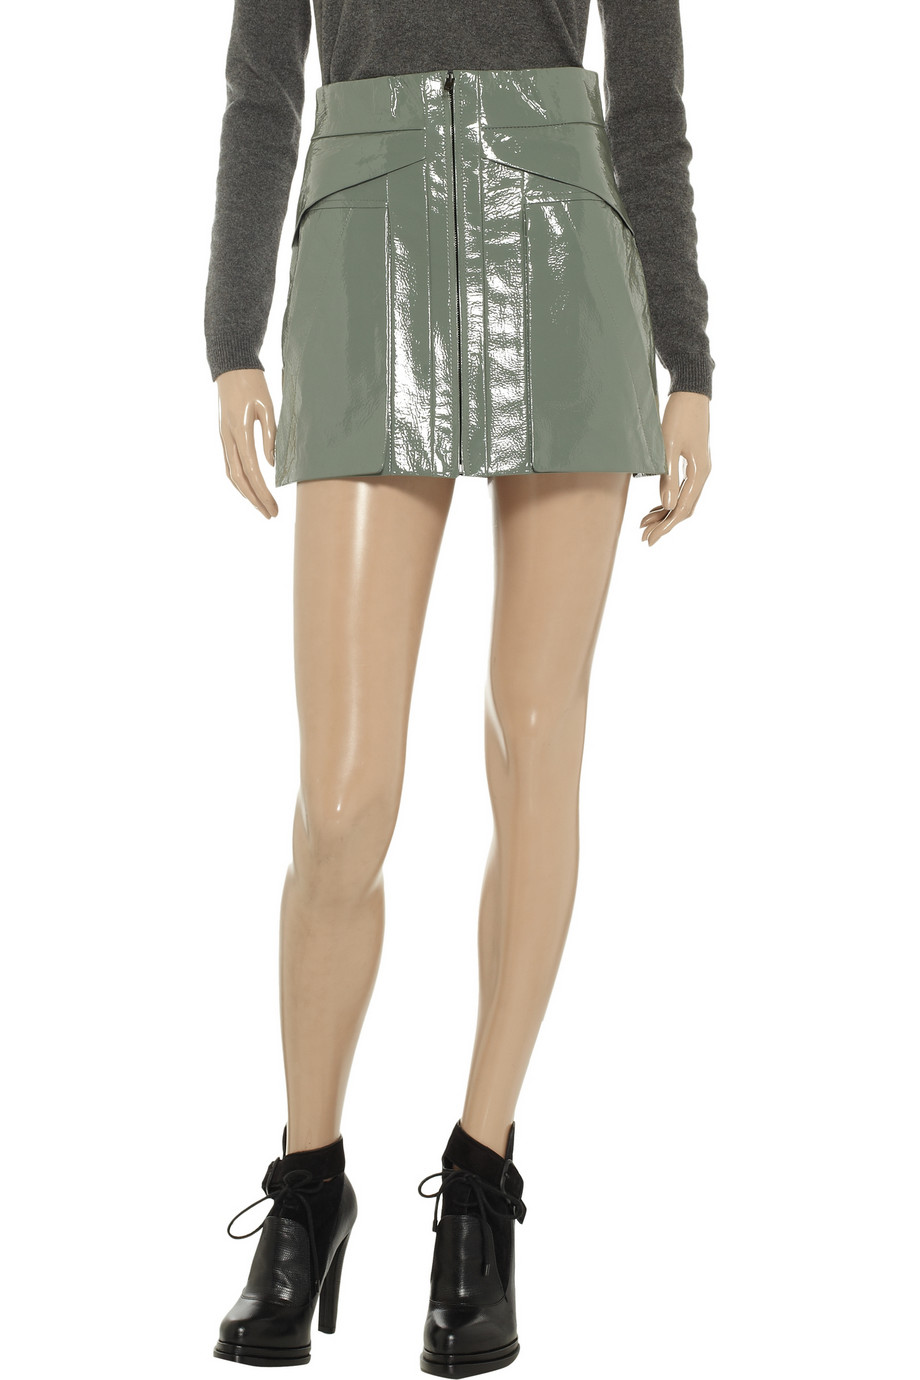 Alexander wang Patent Leather Mini Skirt in Green | Lyst